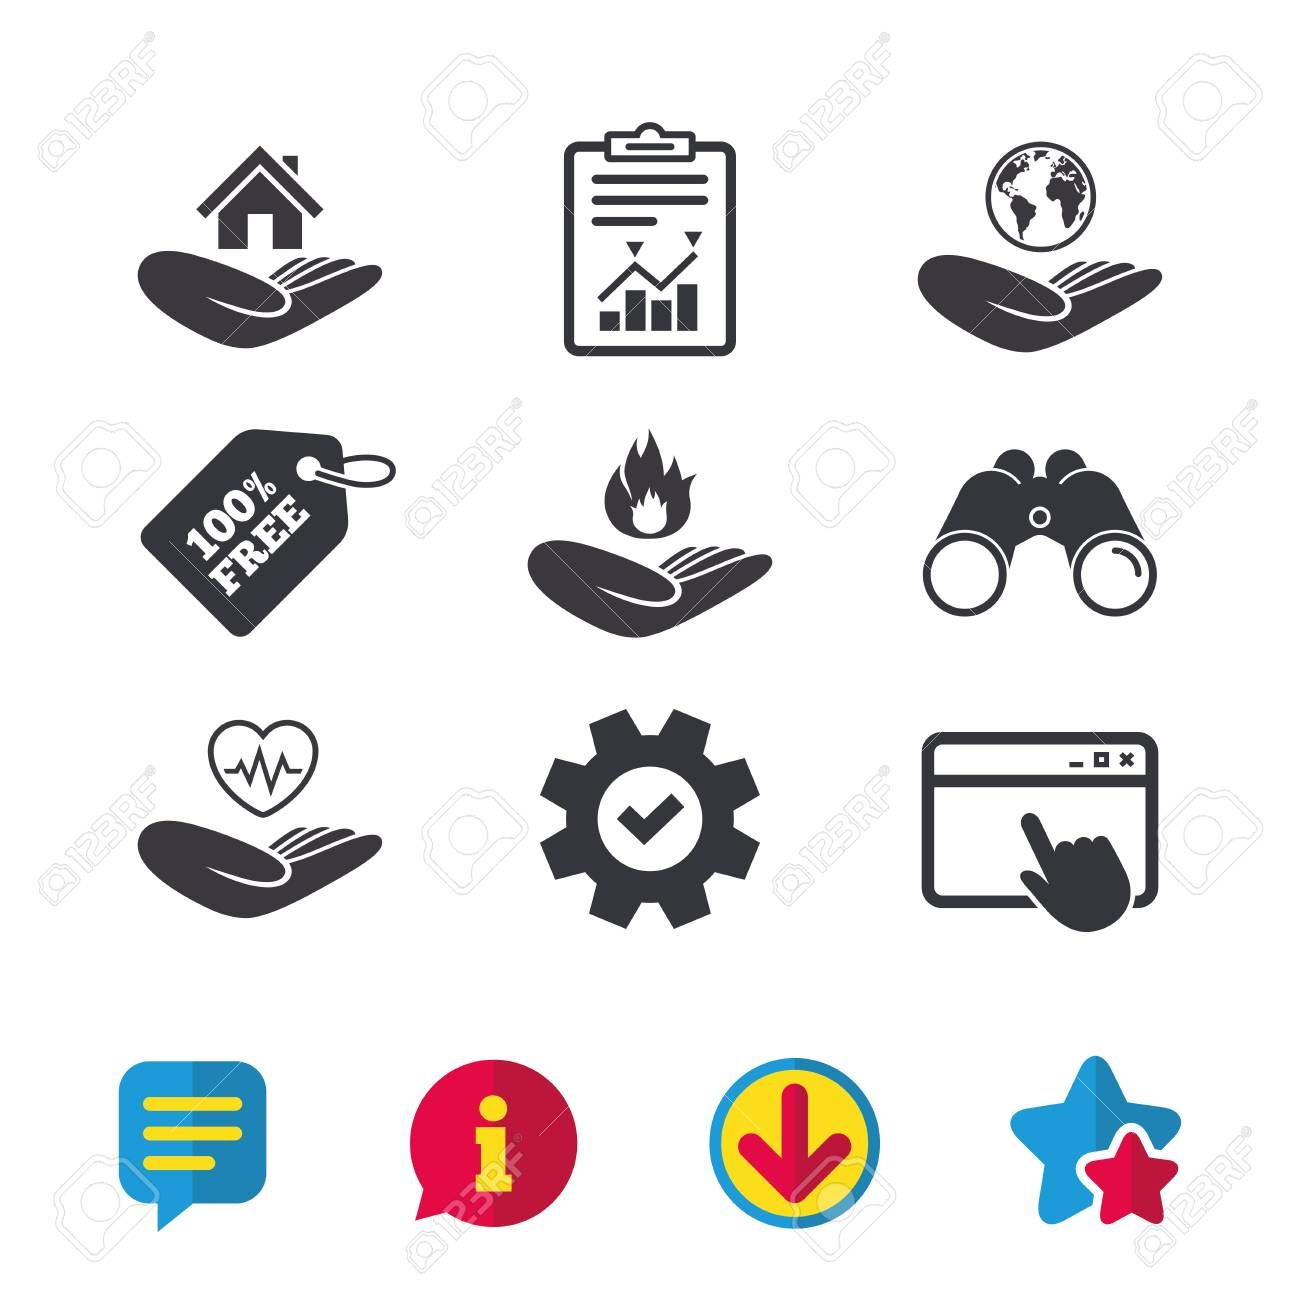 Helping Hands Icons Health And Travel Trip Insurance Symbols Home House Or Real Estate Sign Fire Protection Affiliate Travel Trip Insurance Healt